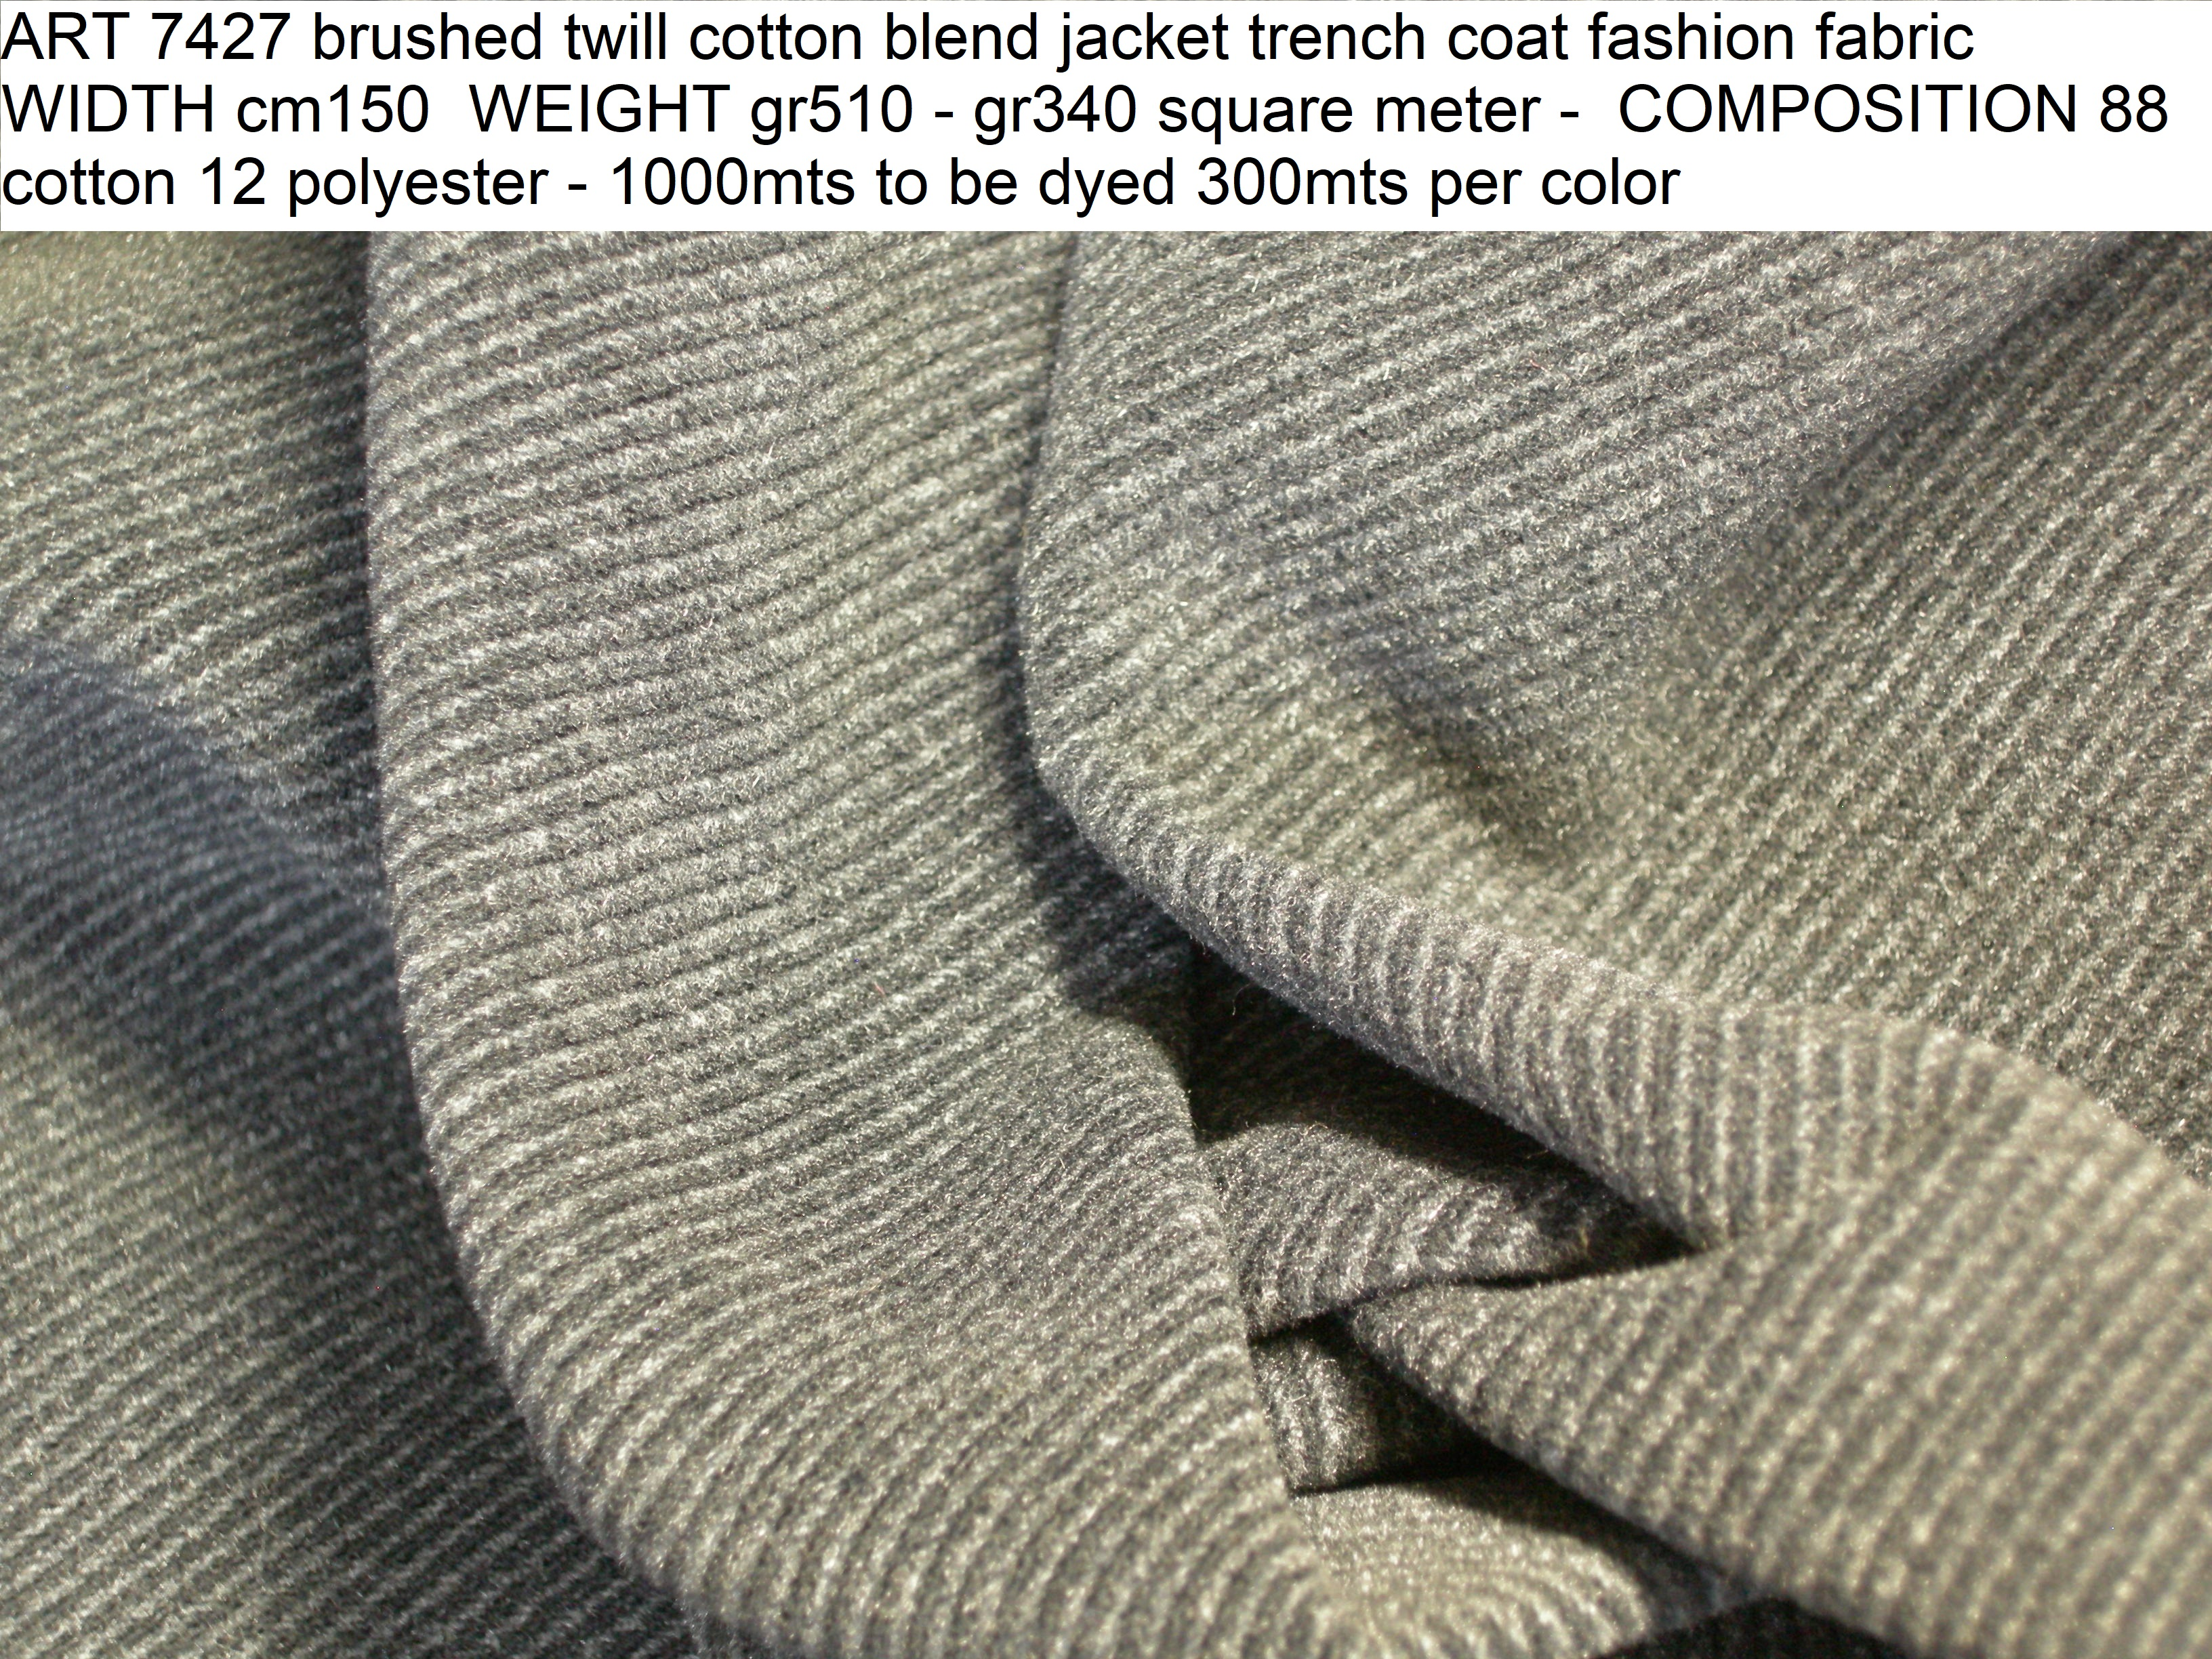 ART 7427 brushed twill cotton blend jacket trench coat fashion fabric WIDTH cm150 WEIGHT gr510 - gr340 square meter - COMPOSITION 88 cotton 12 polyester - 1000mts to be dyed 300mts per color